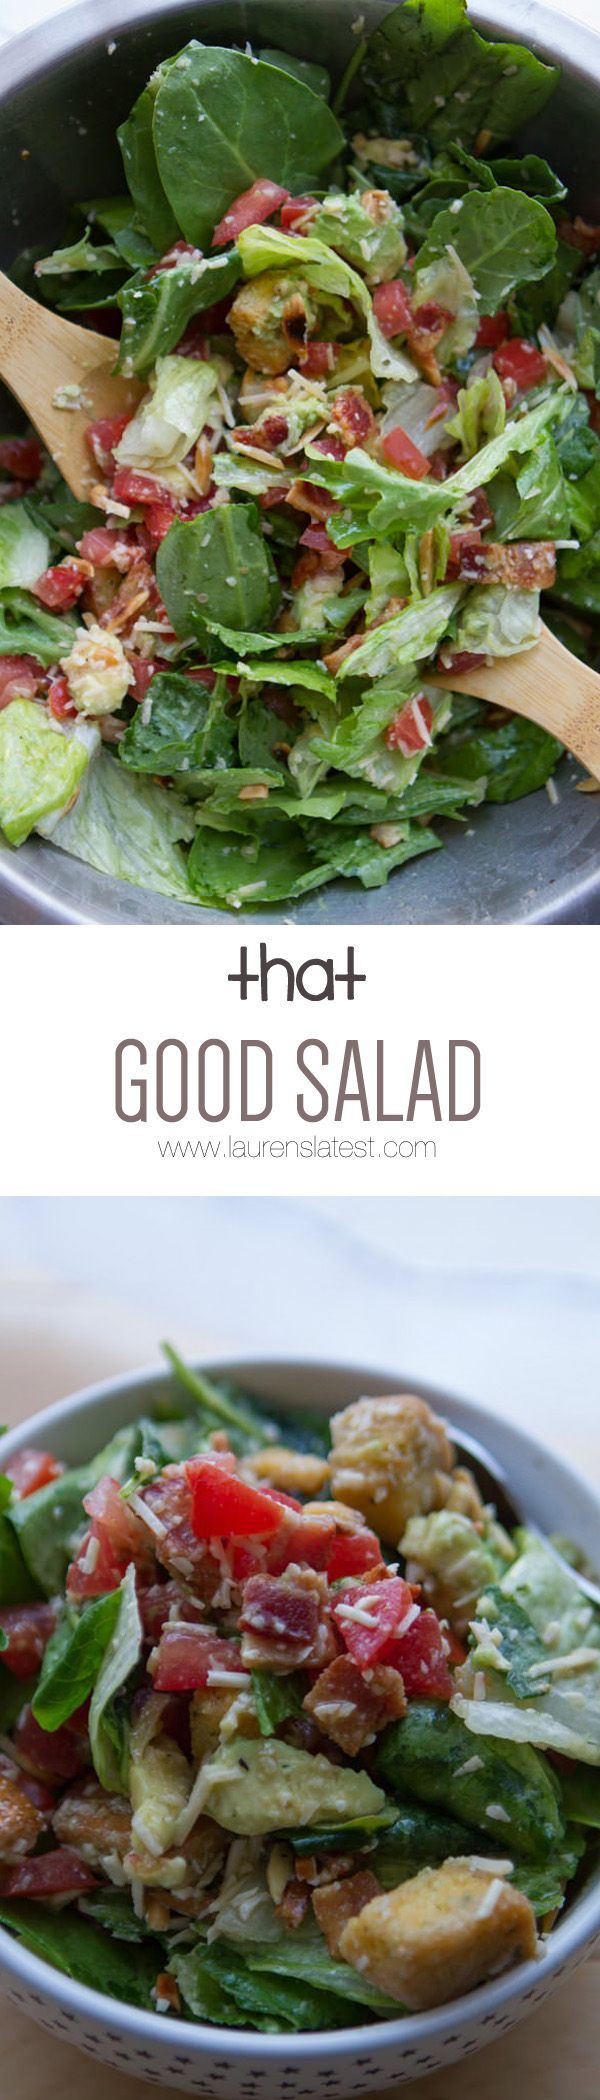 That Good Salad... It's hard to resist all the flavors that are in this salad! Bring it to a potluck and everyone is going to be begging for the recipe!